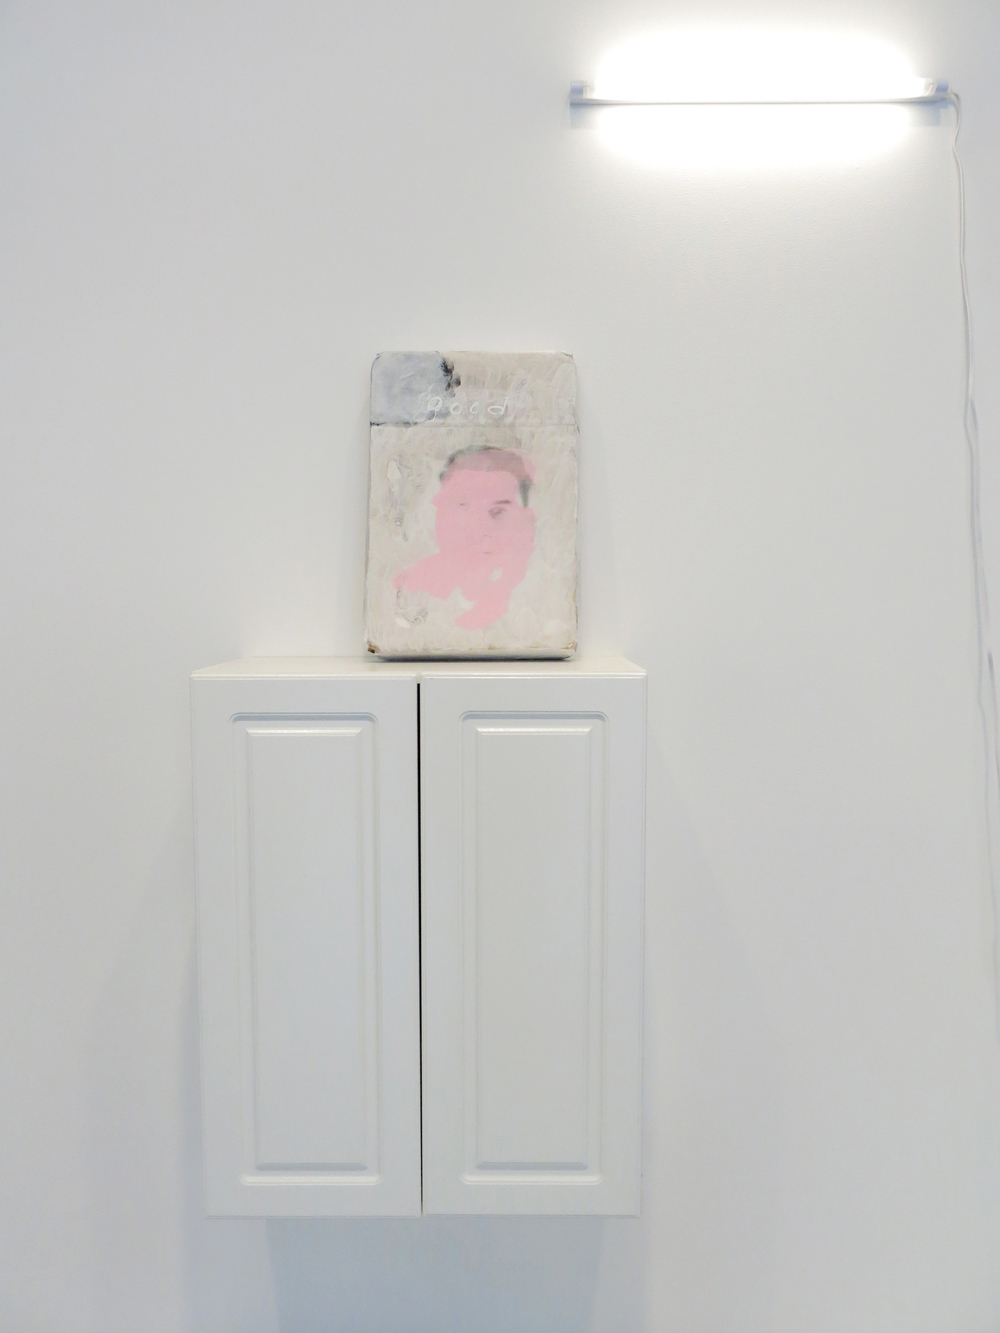 Lee Kit   2 , 2014 acrylic, emulsion paint, correction ink, pencil, and inkjet ink on cardboard painting: 12.6 x 17.91 x 2.95 inches 32 x 45.5 x 7.5 cm installation: dimensions variable